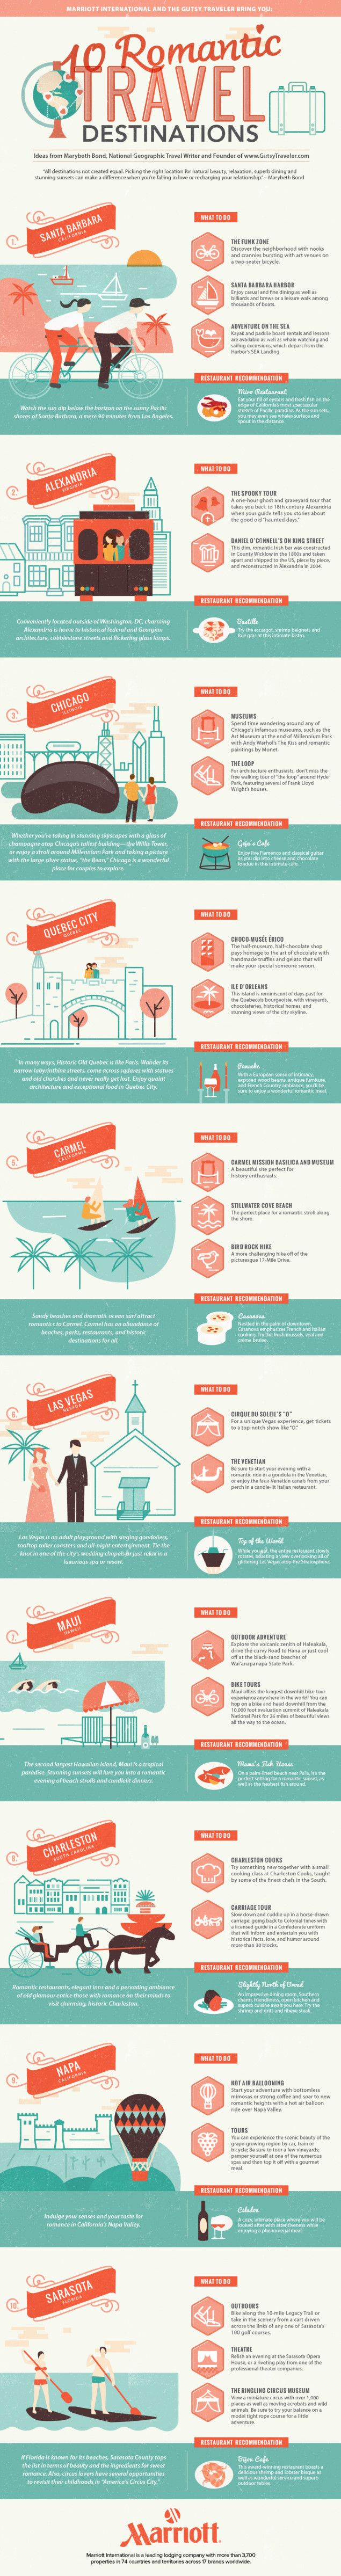 Love is in the air! Top 10 Romantic Travel Destinations in the US #Infographic